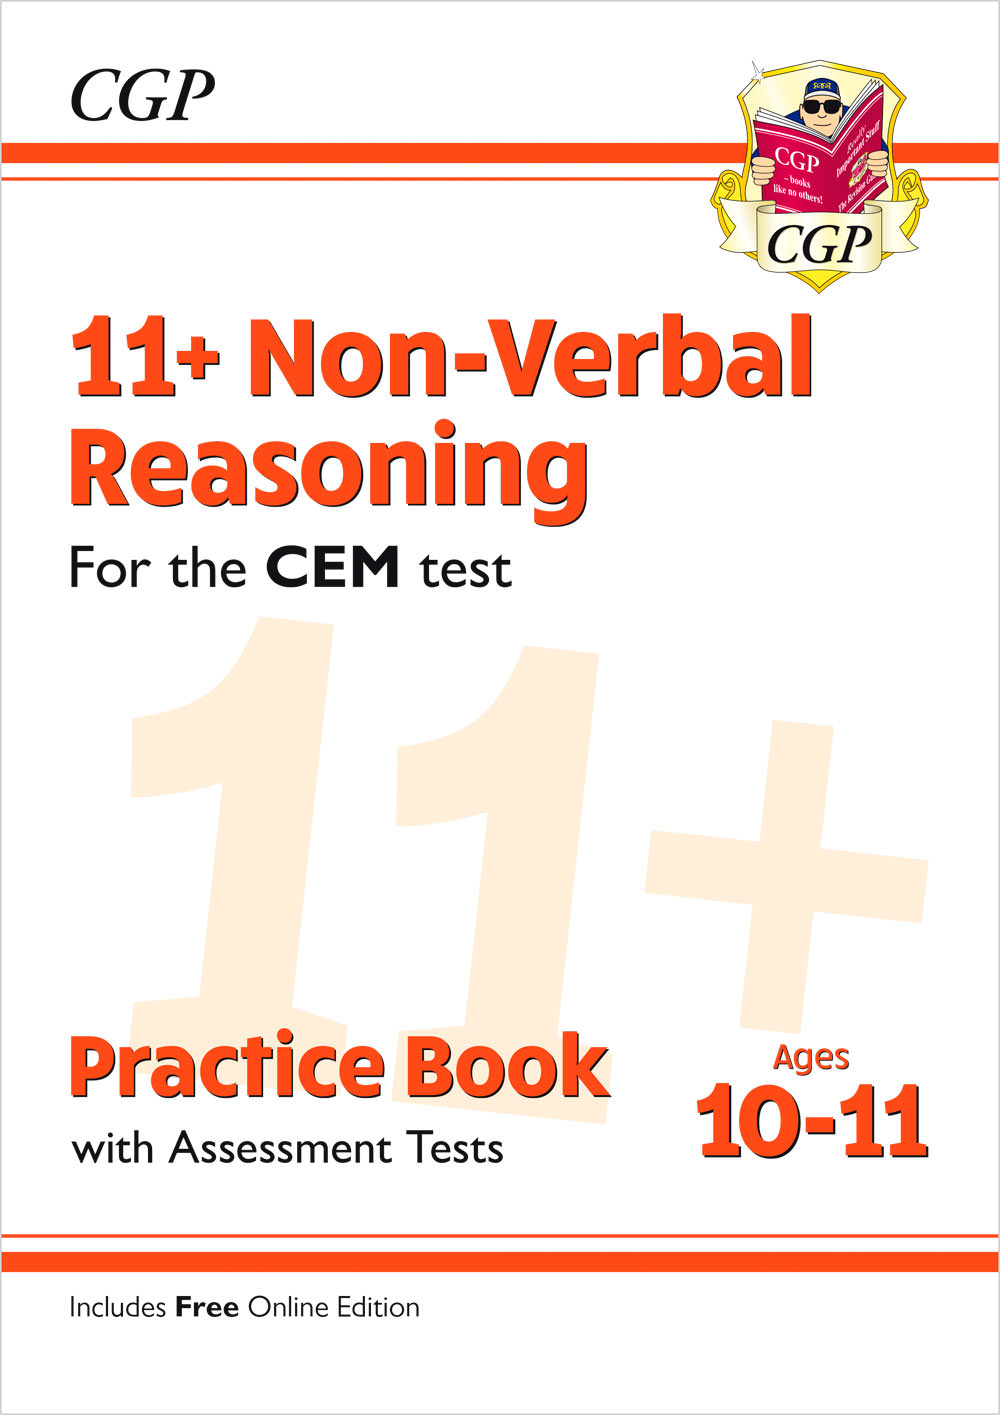 N6QDE2 - 11+ CEM Non-Verbal Reasoning Practice Book & Assessment Tests - Ages 10-11 (with Online Edi